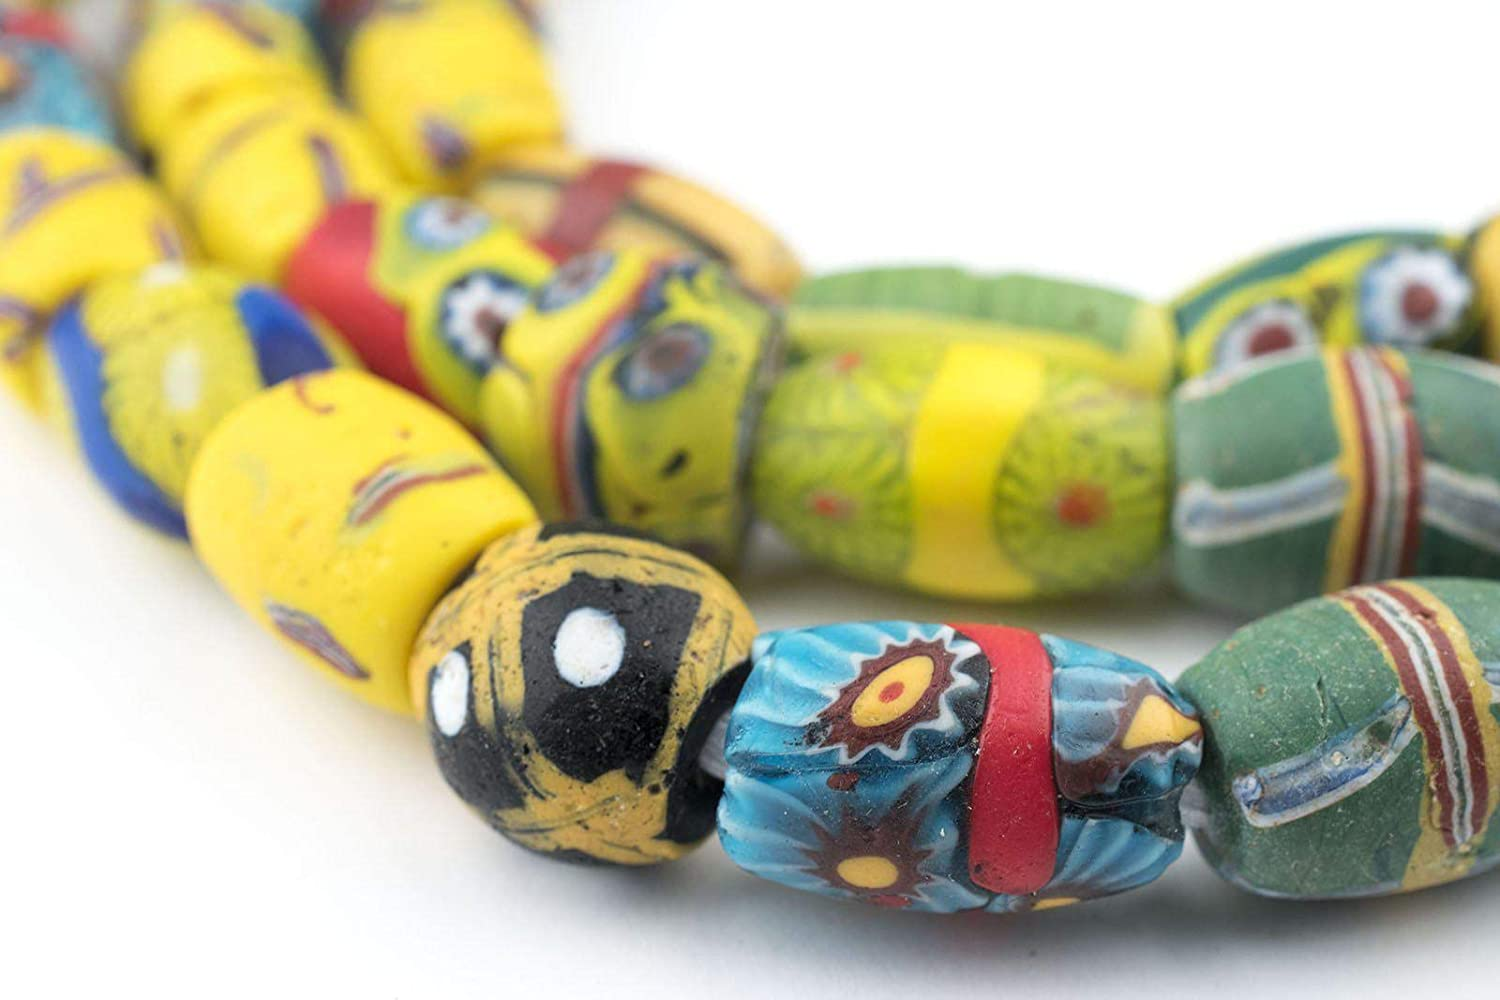 40mm in length and 12mm dia. Strand of 3 \u201celbow\u201d beads in excellent condition Approx Antique Venetian Millefiori African Trade Beads